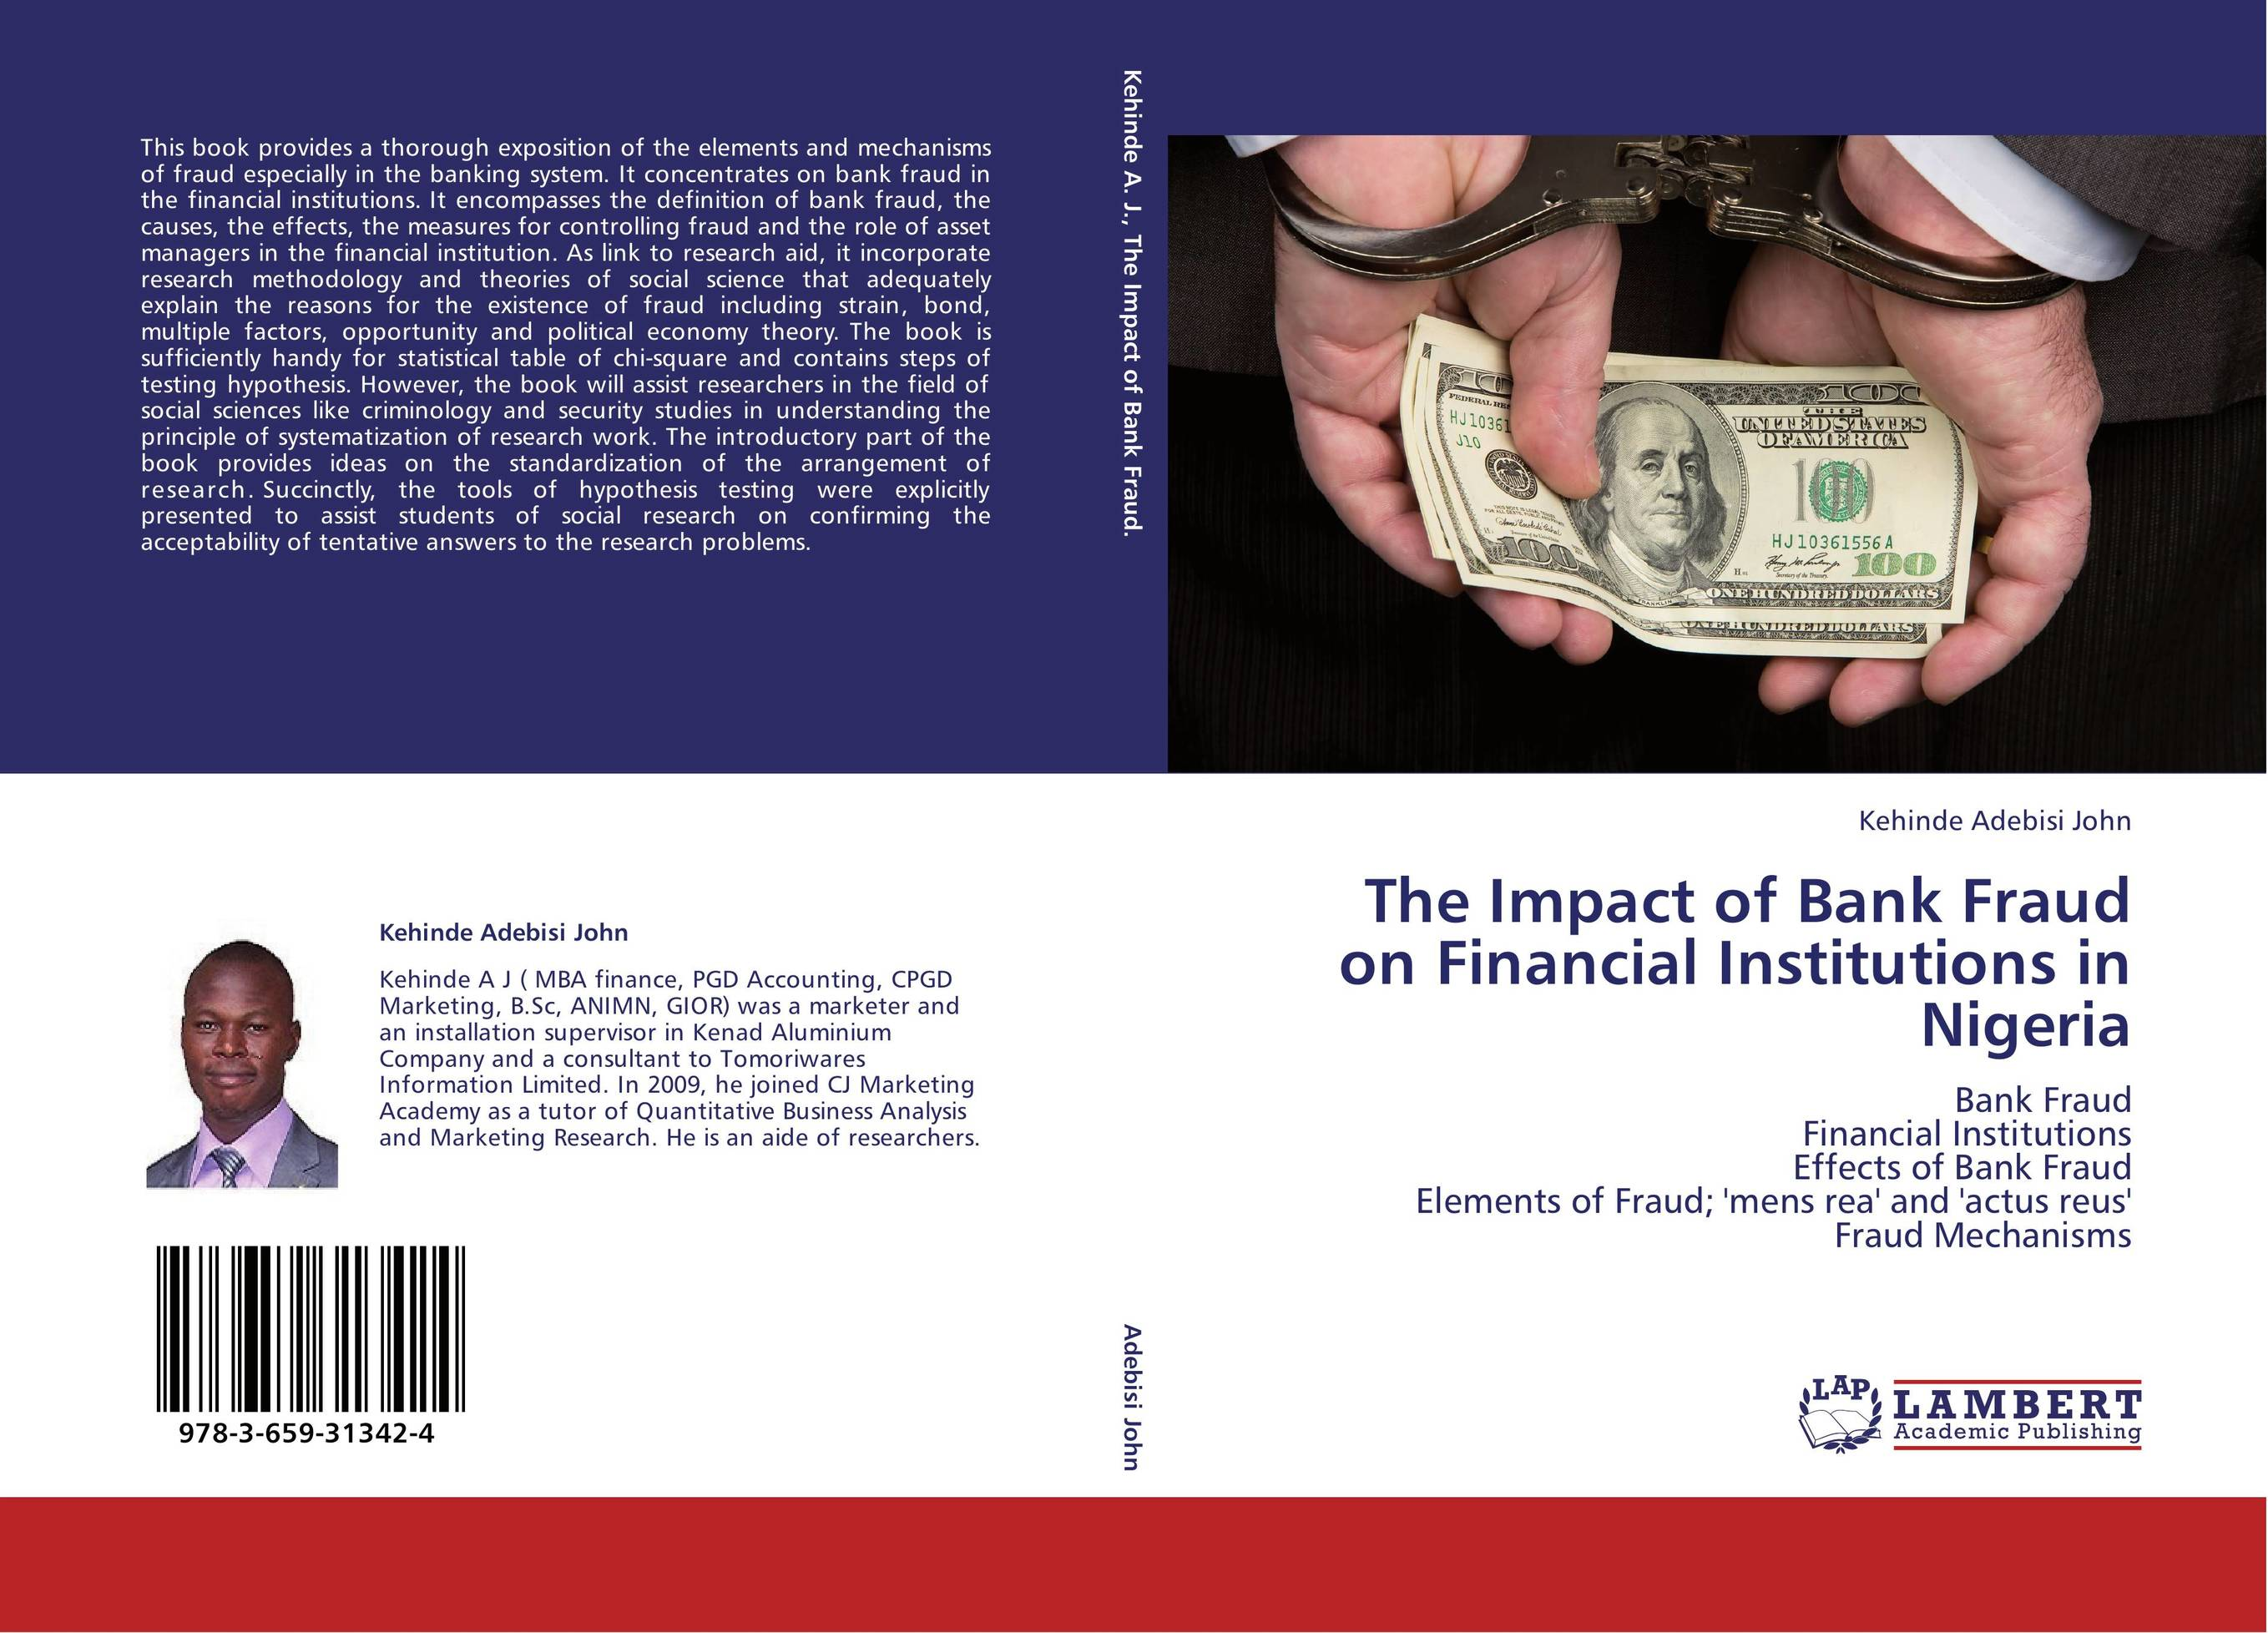 abolition of universal banking in nigeria implication The agitation for universal banking began when some merchant banks sought permission from the central bank of nigeria to convert to commercial banks in response to what they perceived as skewed structure of the banking industry, which in most cases favoured commercial banks.